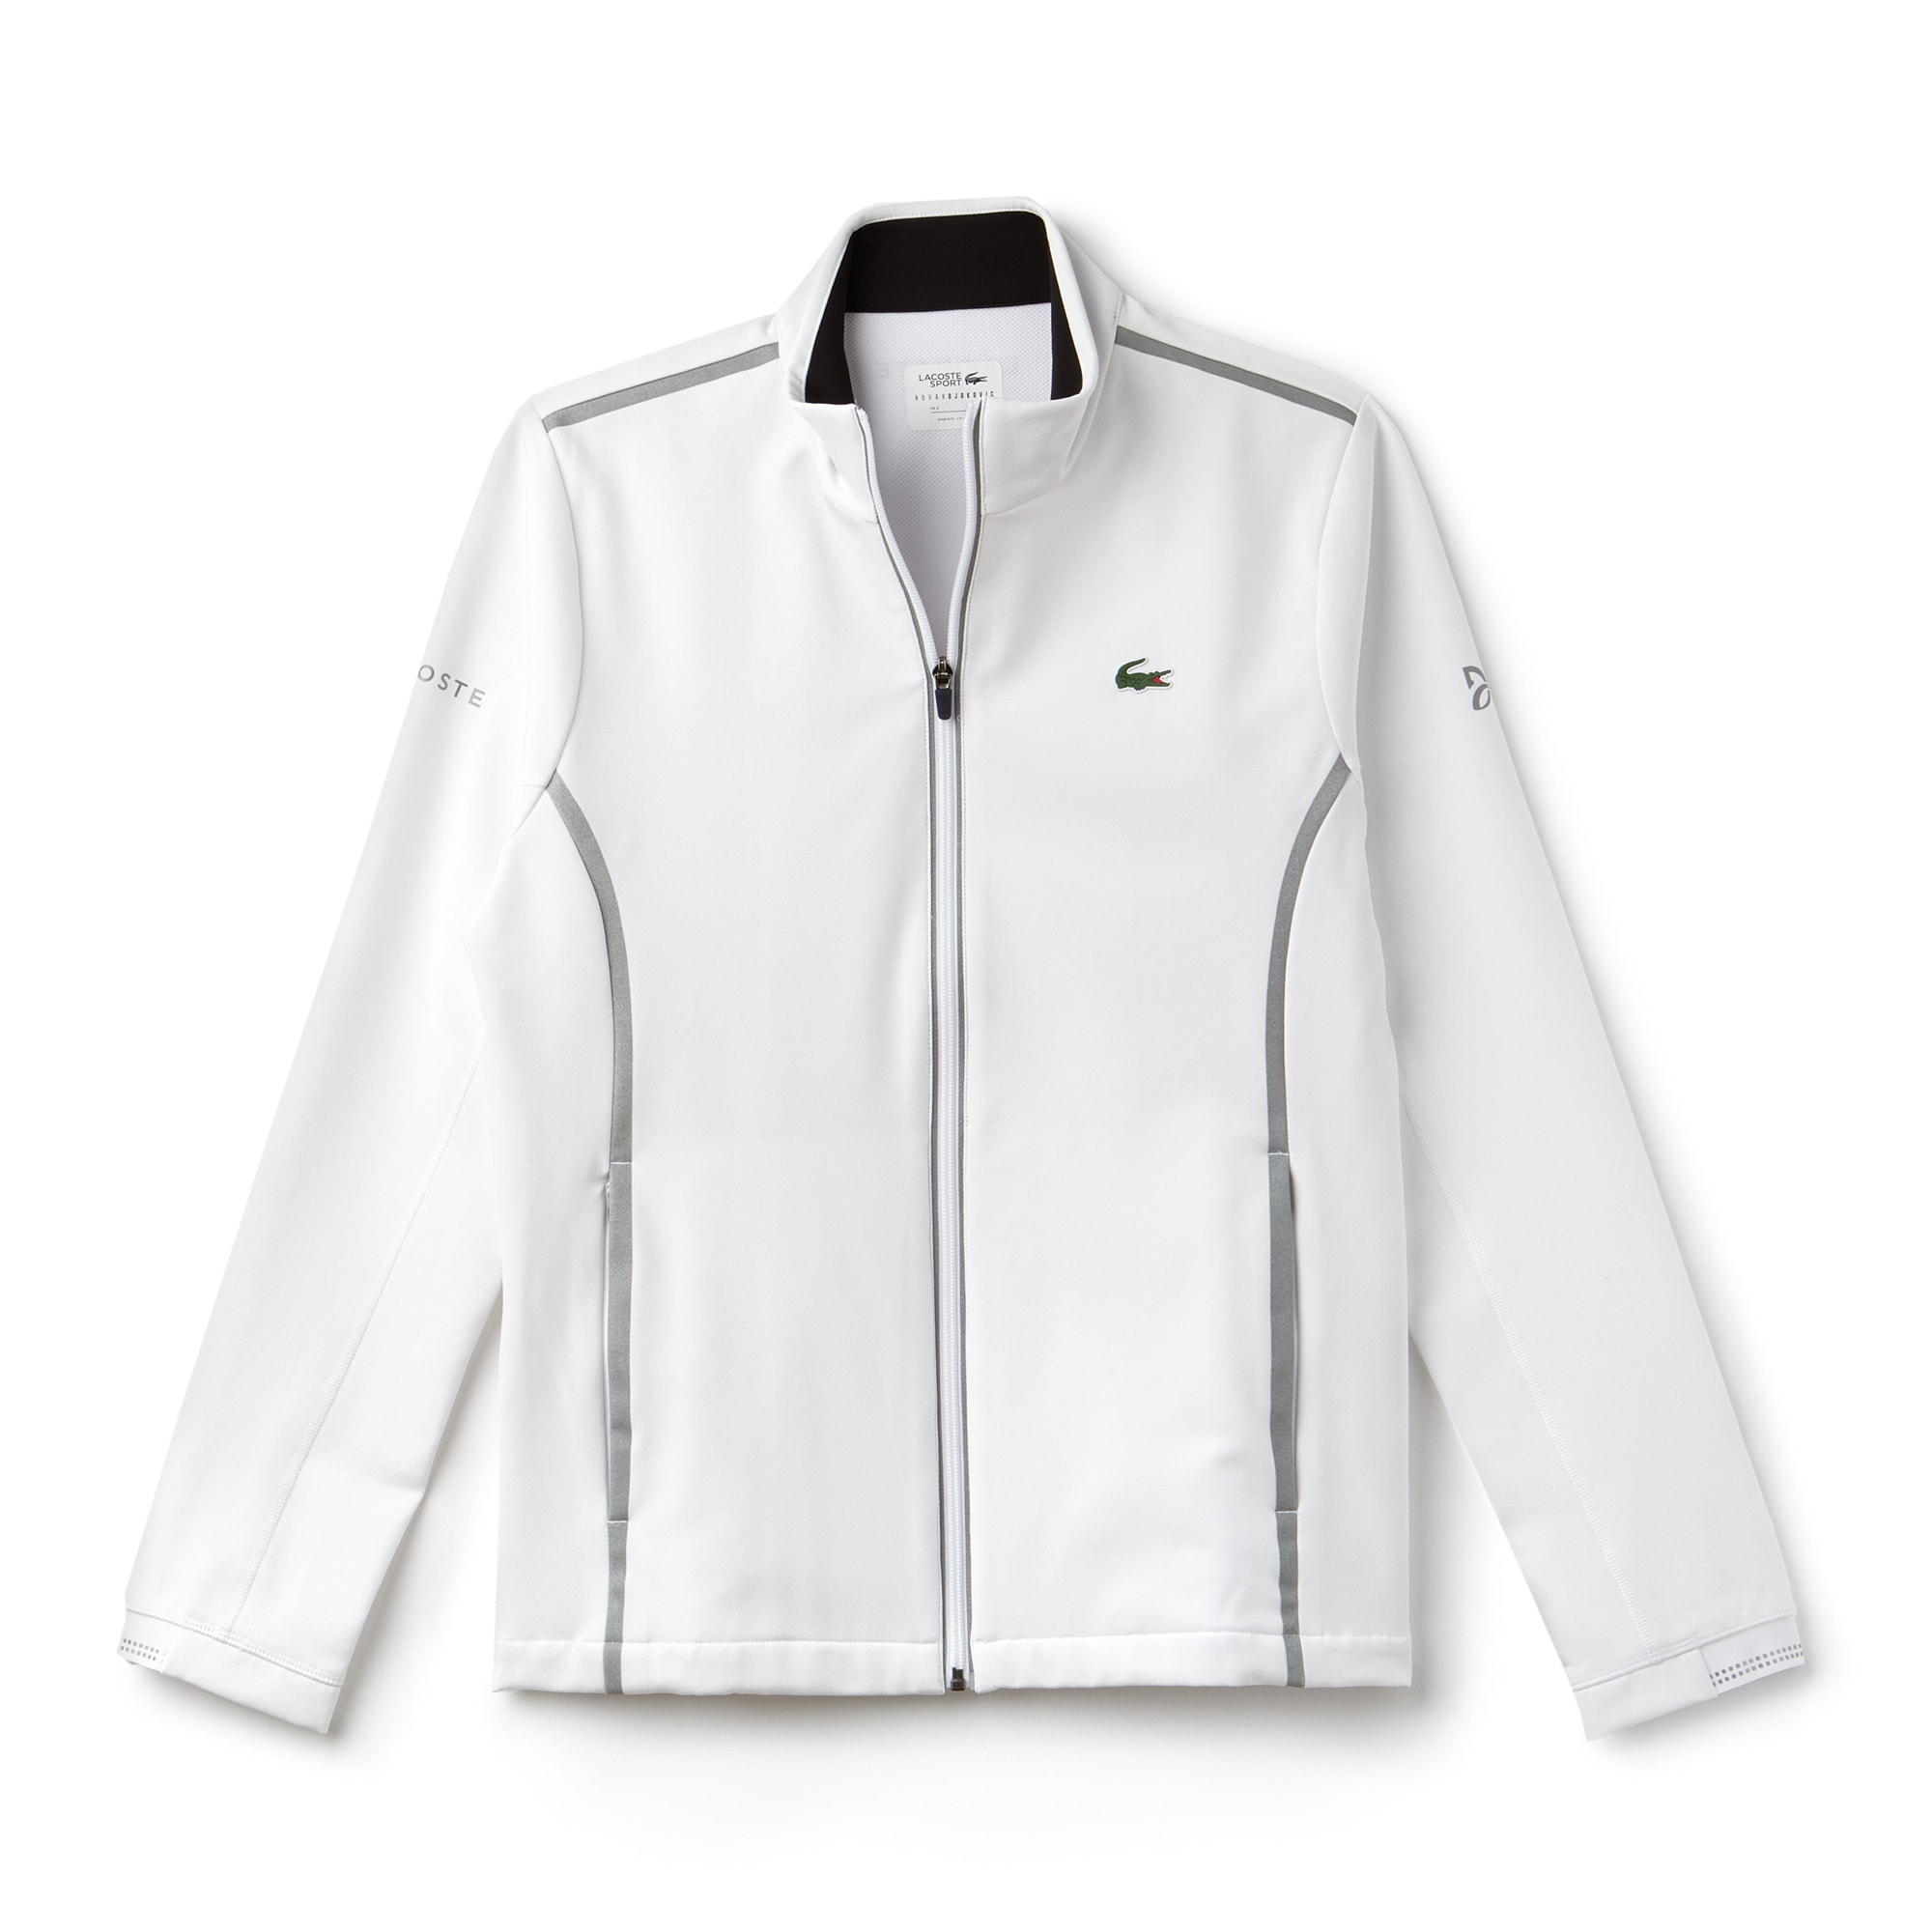 Sudadera con cremallera Lacoste SPORT COLLECTION NOVAK DJOKOVIC SUPPORT WITH STYLE de midlayer técnico